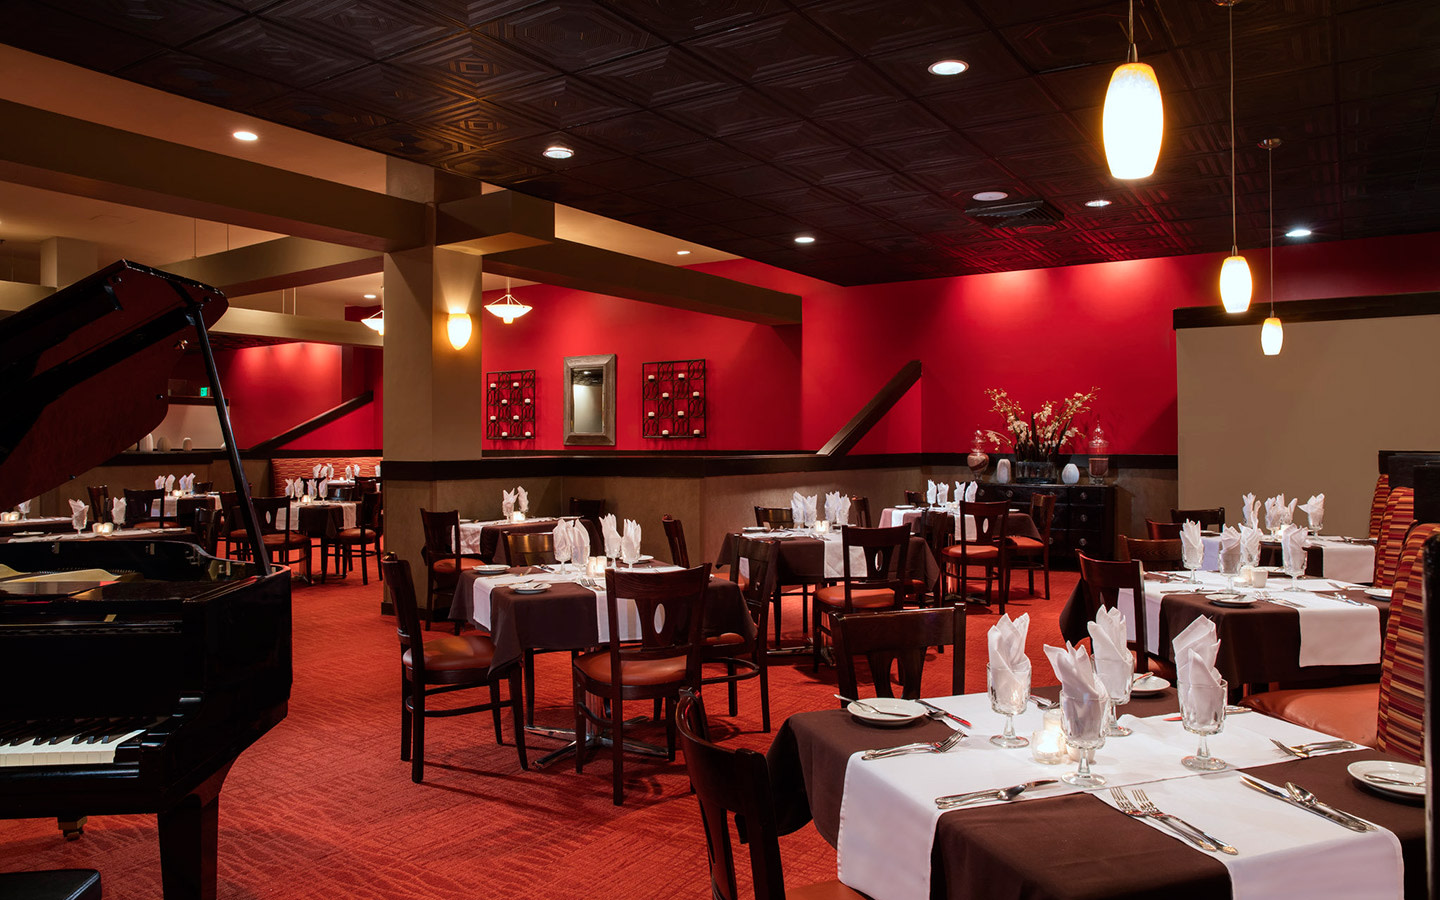 Rioja Grille dining area